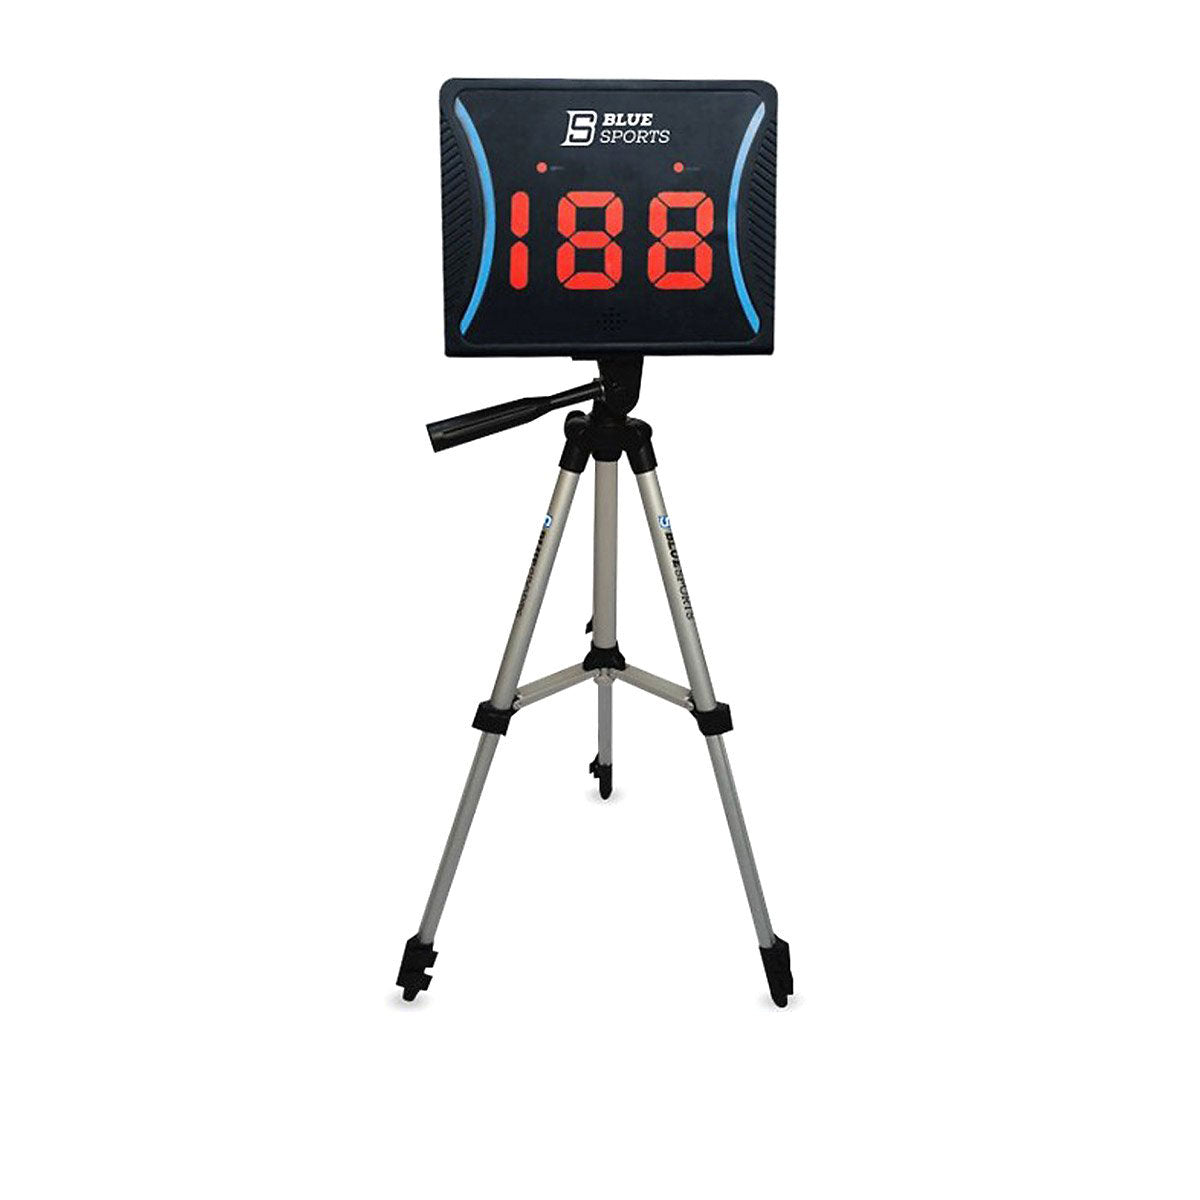 Blue Sports Tripod for Sports Radar